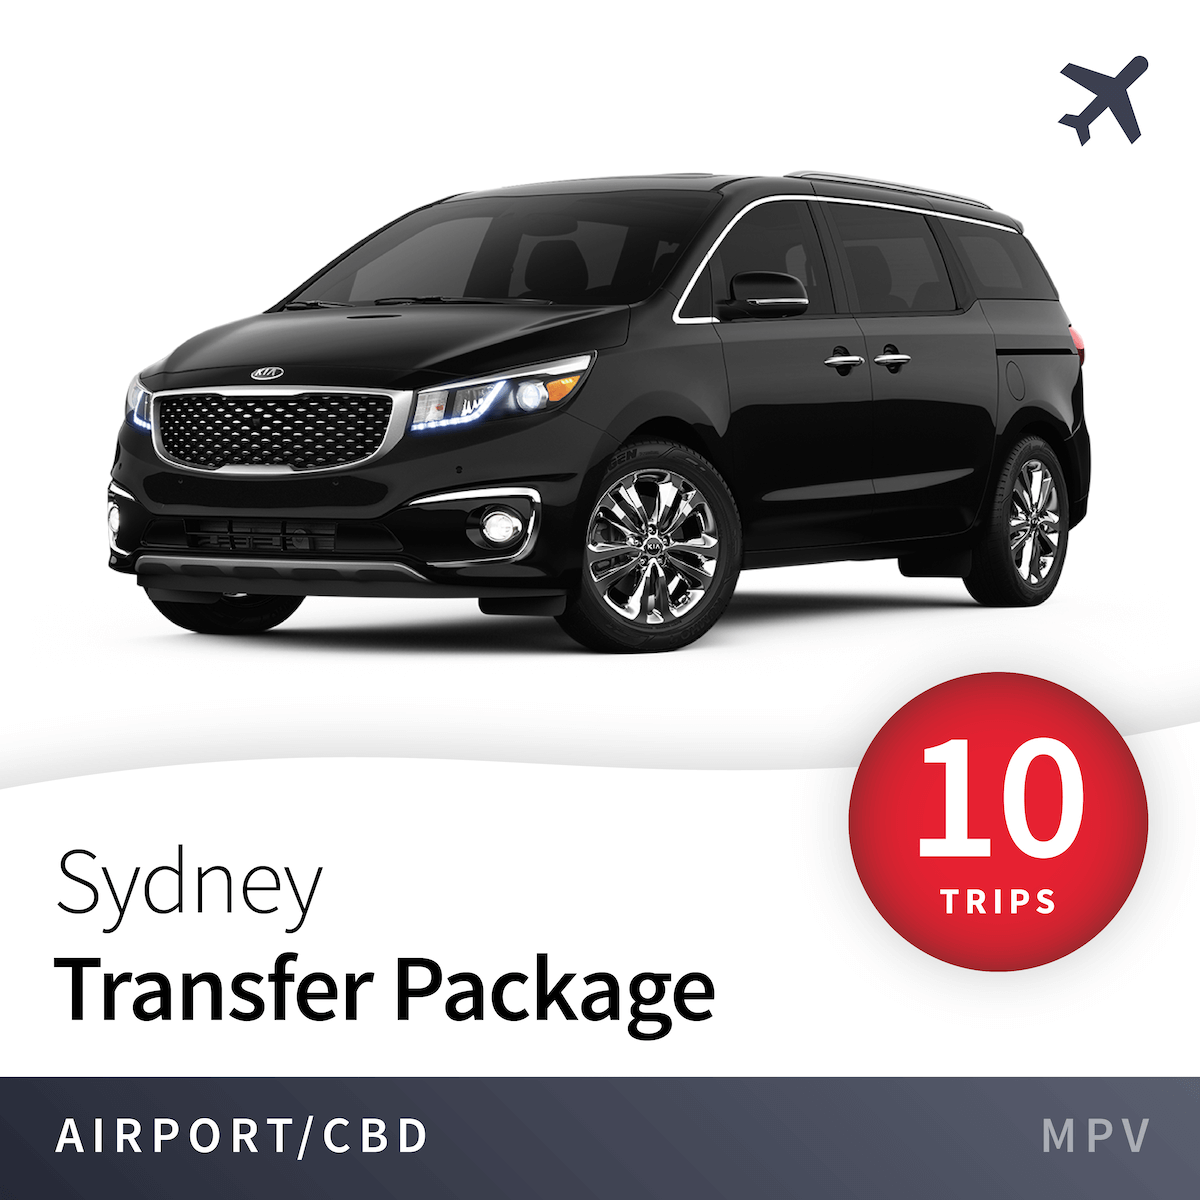 Sydney Airport Transfer Package - MPV (10 Trips) 11